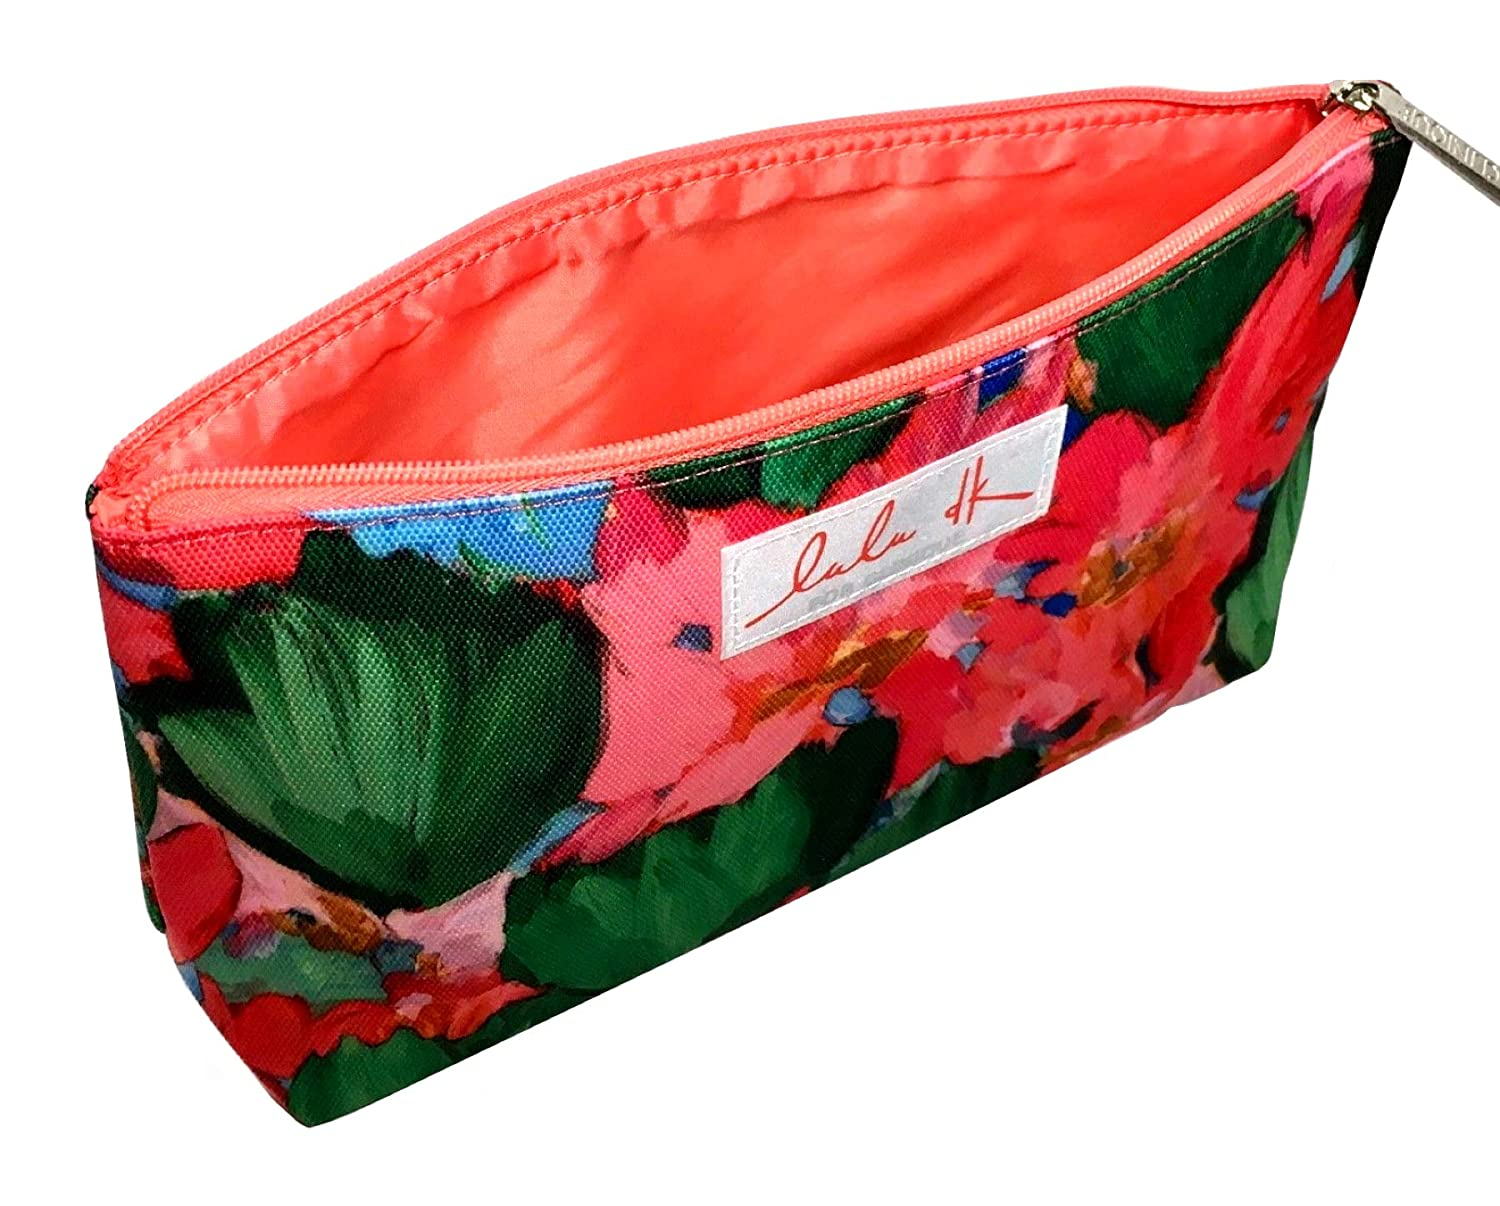 Amazon.com: Clinique Colorful Original Flores Patrón Bolsa ...